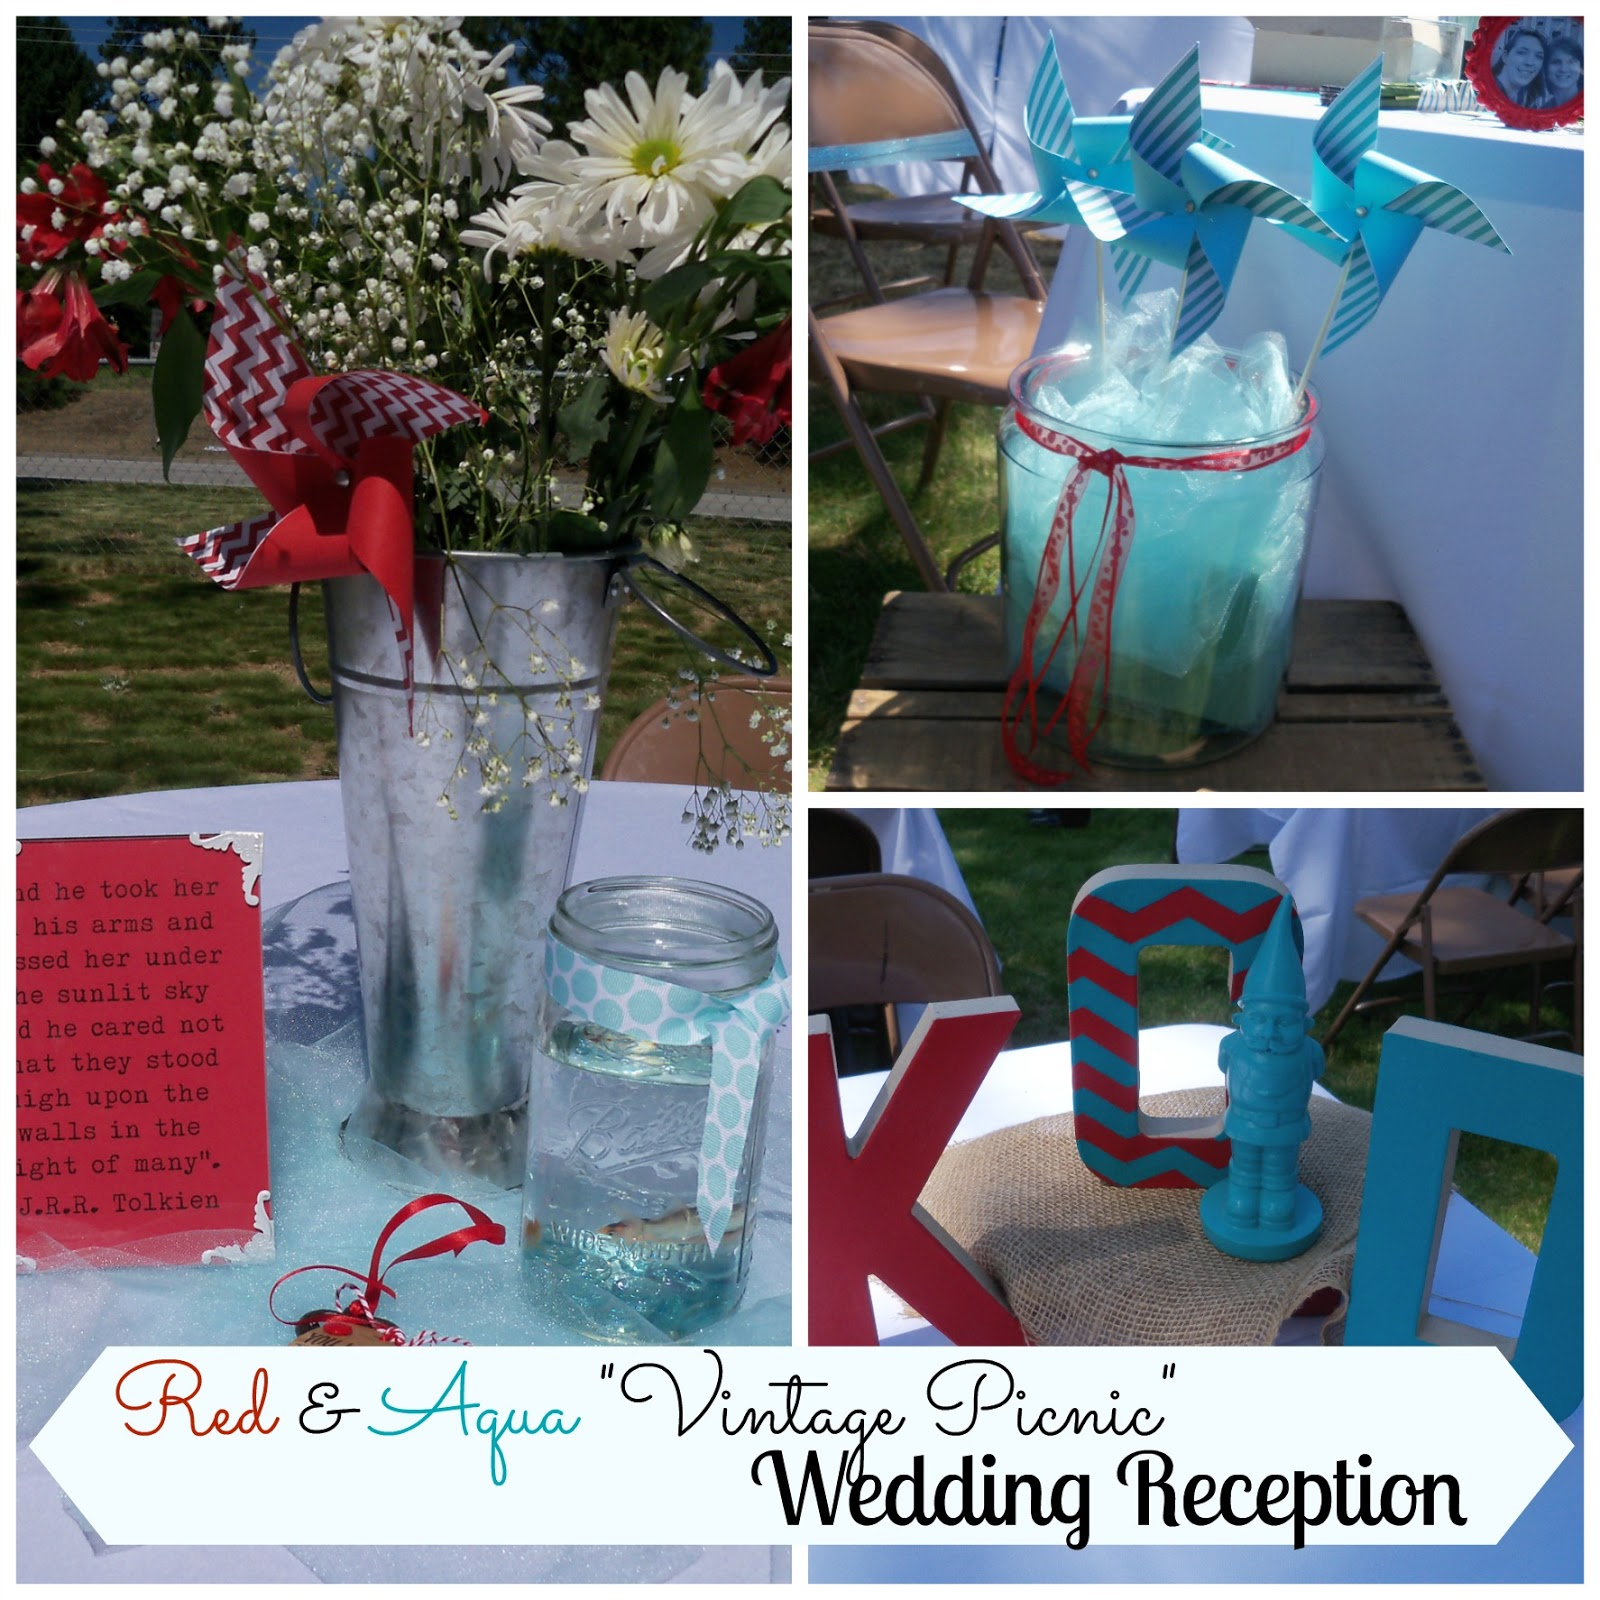 Cute Wedding Ideas For Reception: Clare's Contemplations: Red, Aqua, And Cute All Over